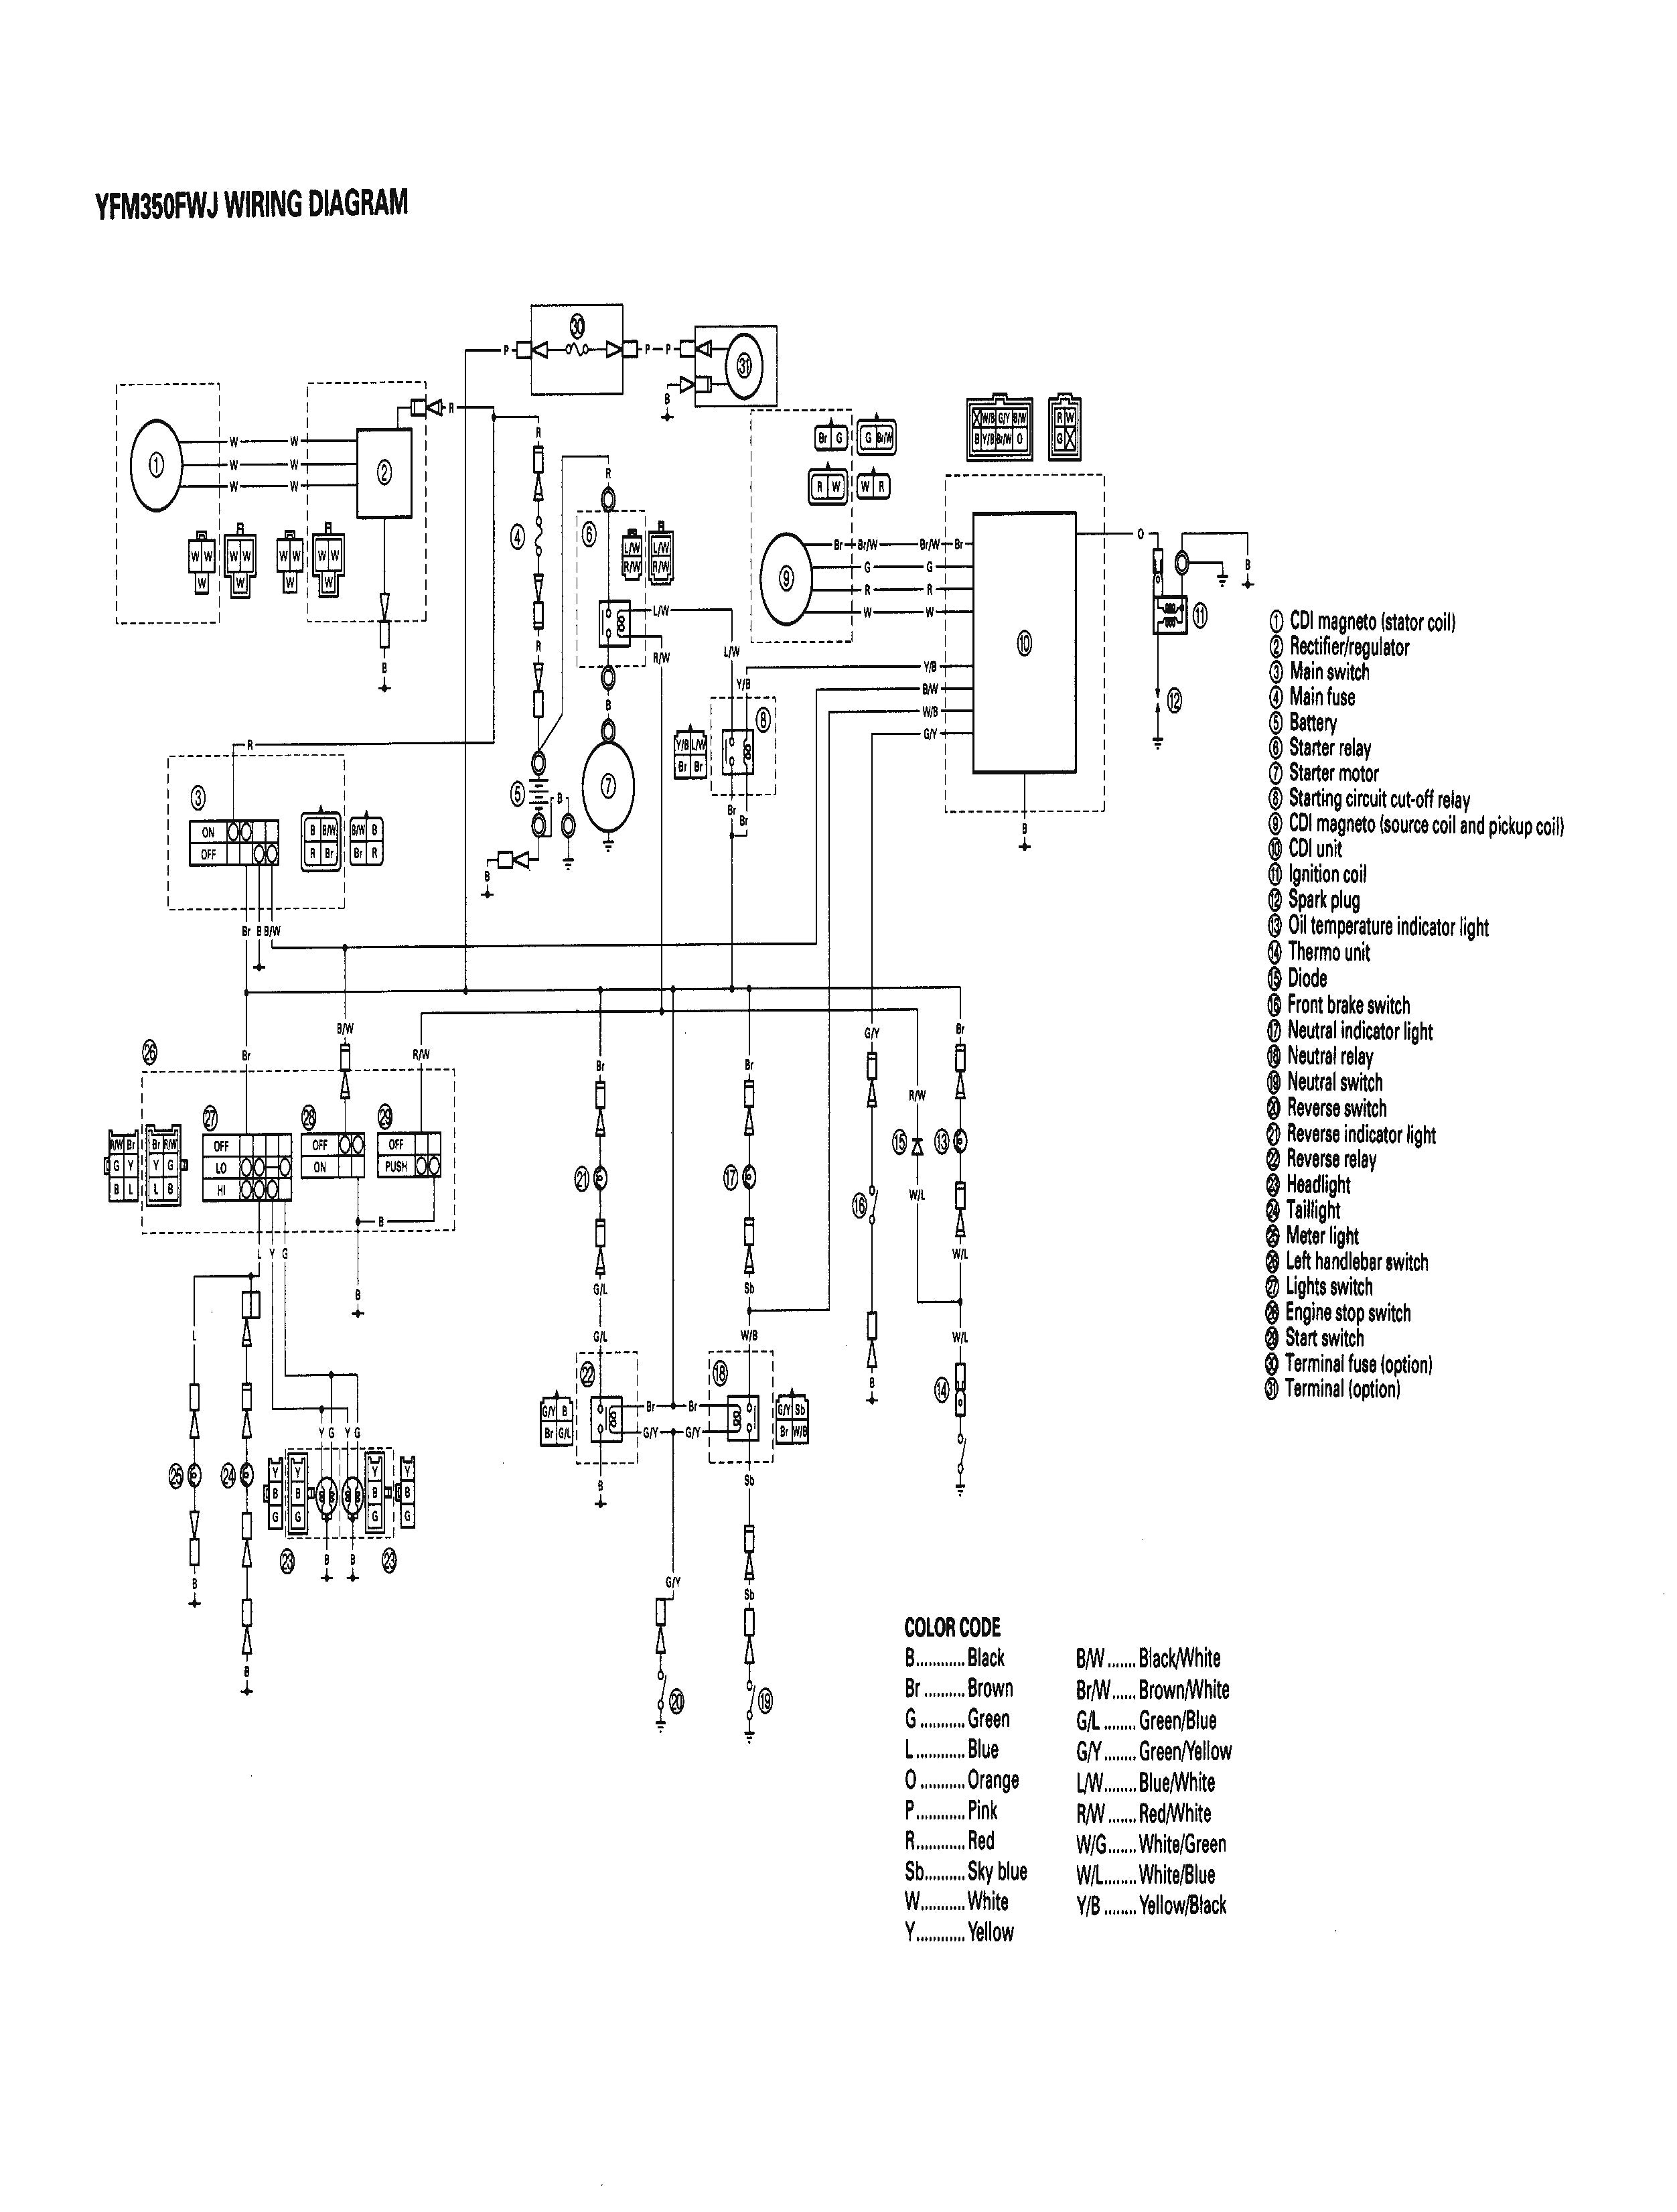 Yamaha starter motor wiring diagram product wiring diagrams yamaha warrior engine diagram mitsubishi starter motor wiring rh detoxicrecenze com motor control wiring diagrams motor control wiring diagrams asfbconference2016 Image collections